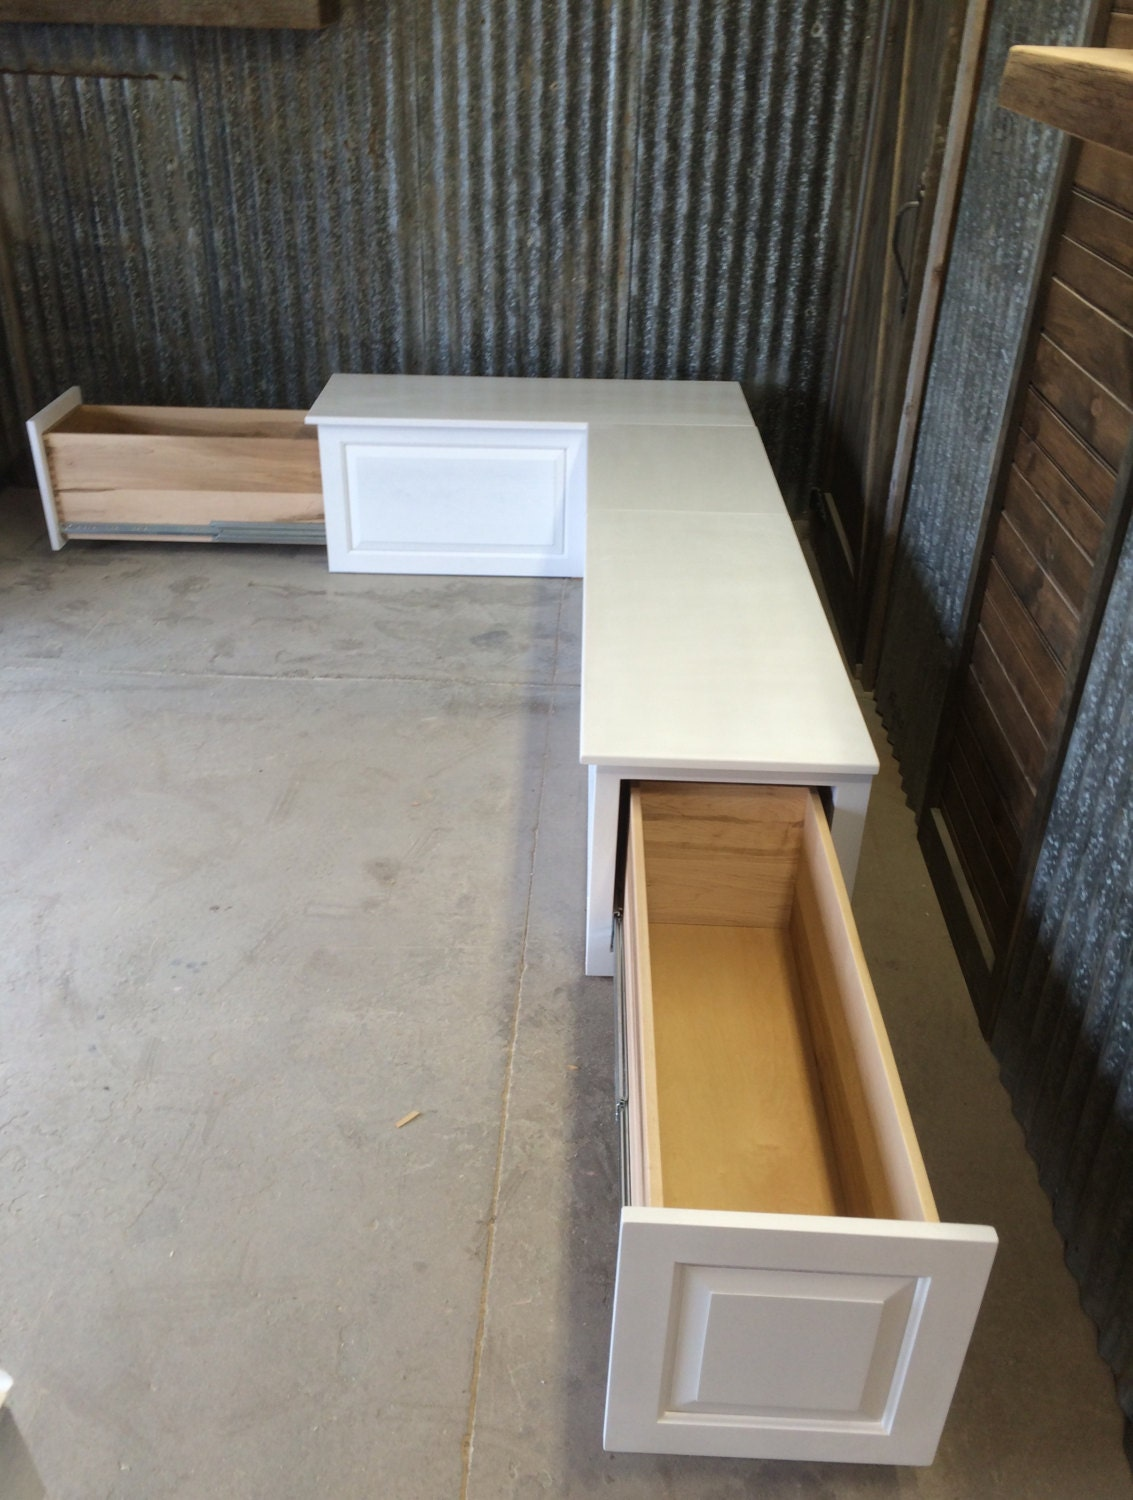 Banquette Corner Bench Seat With Storage Drawers